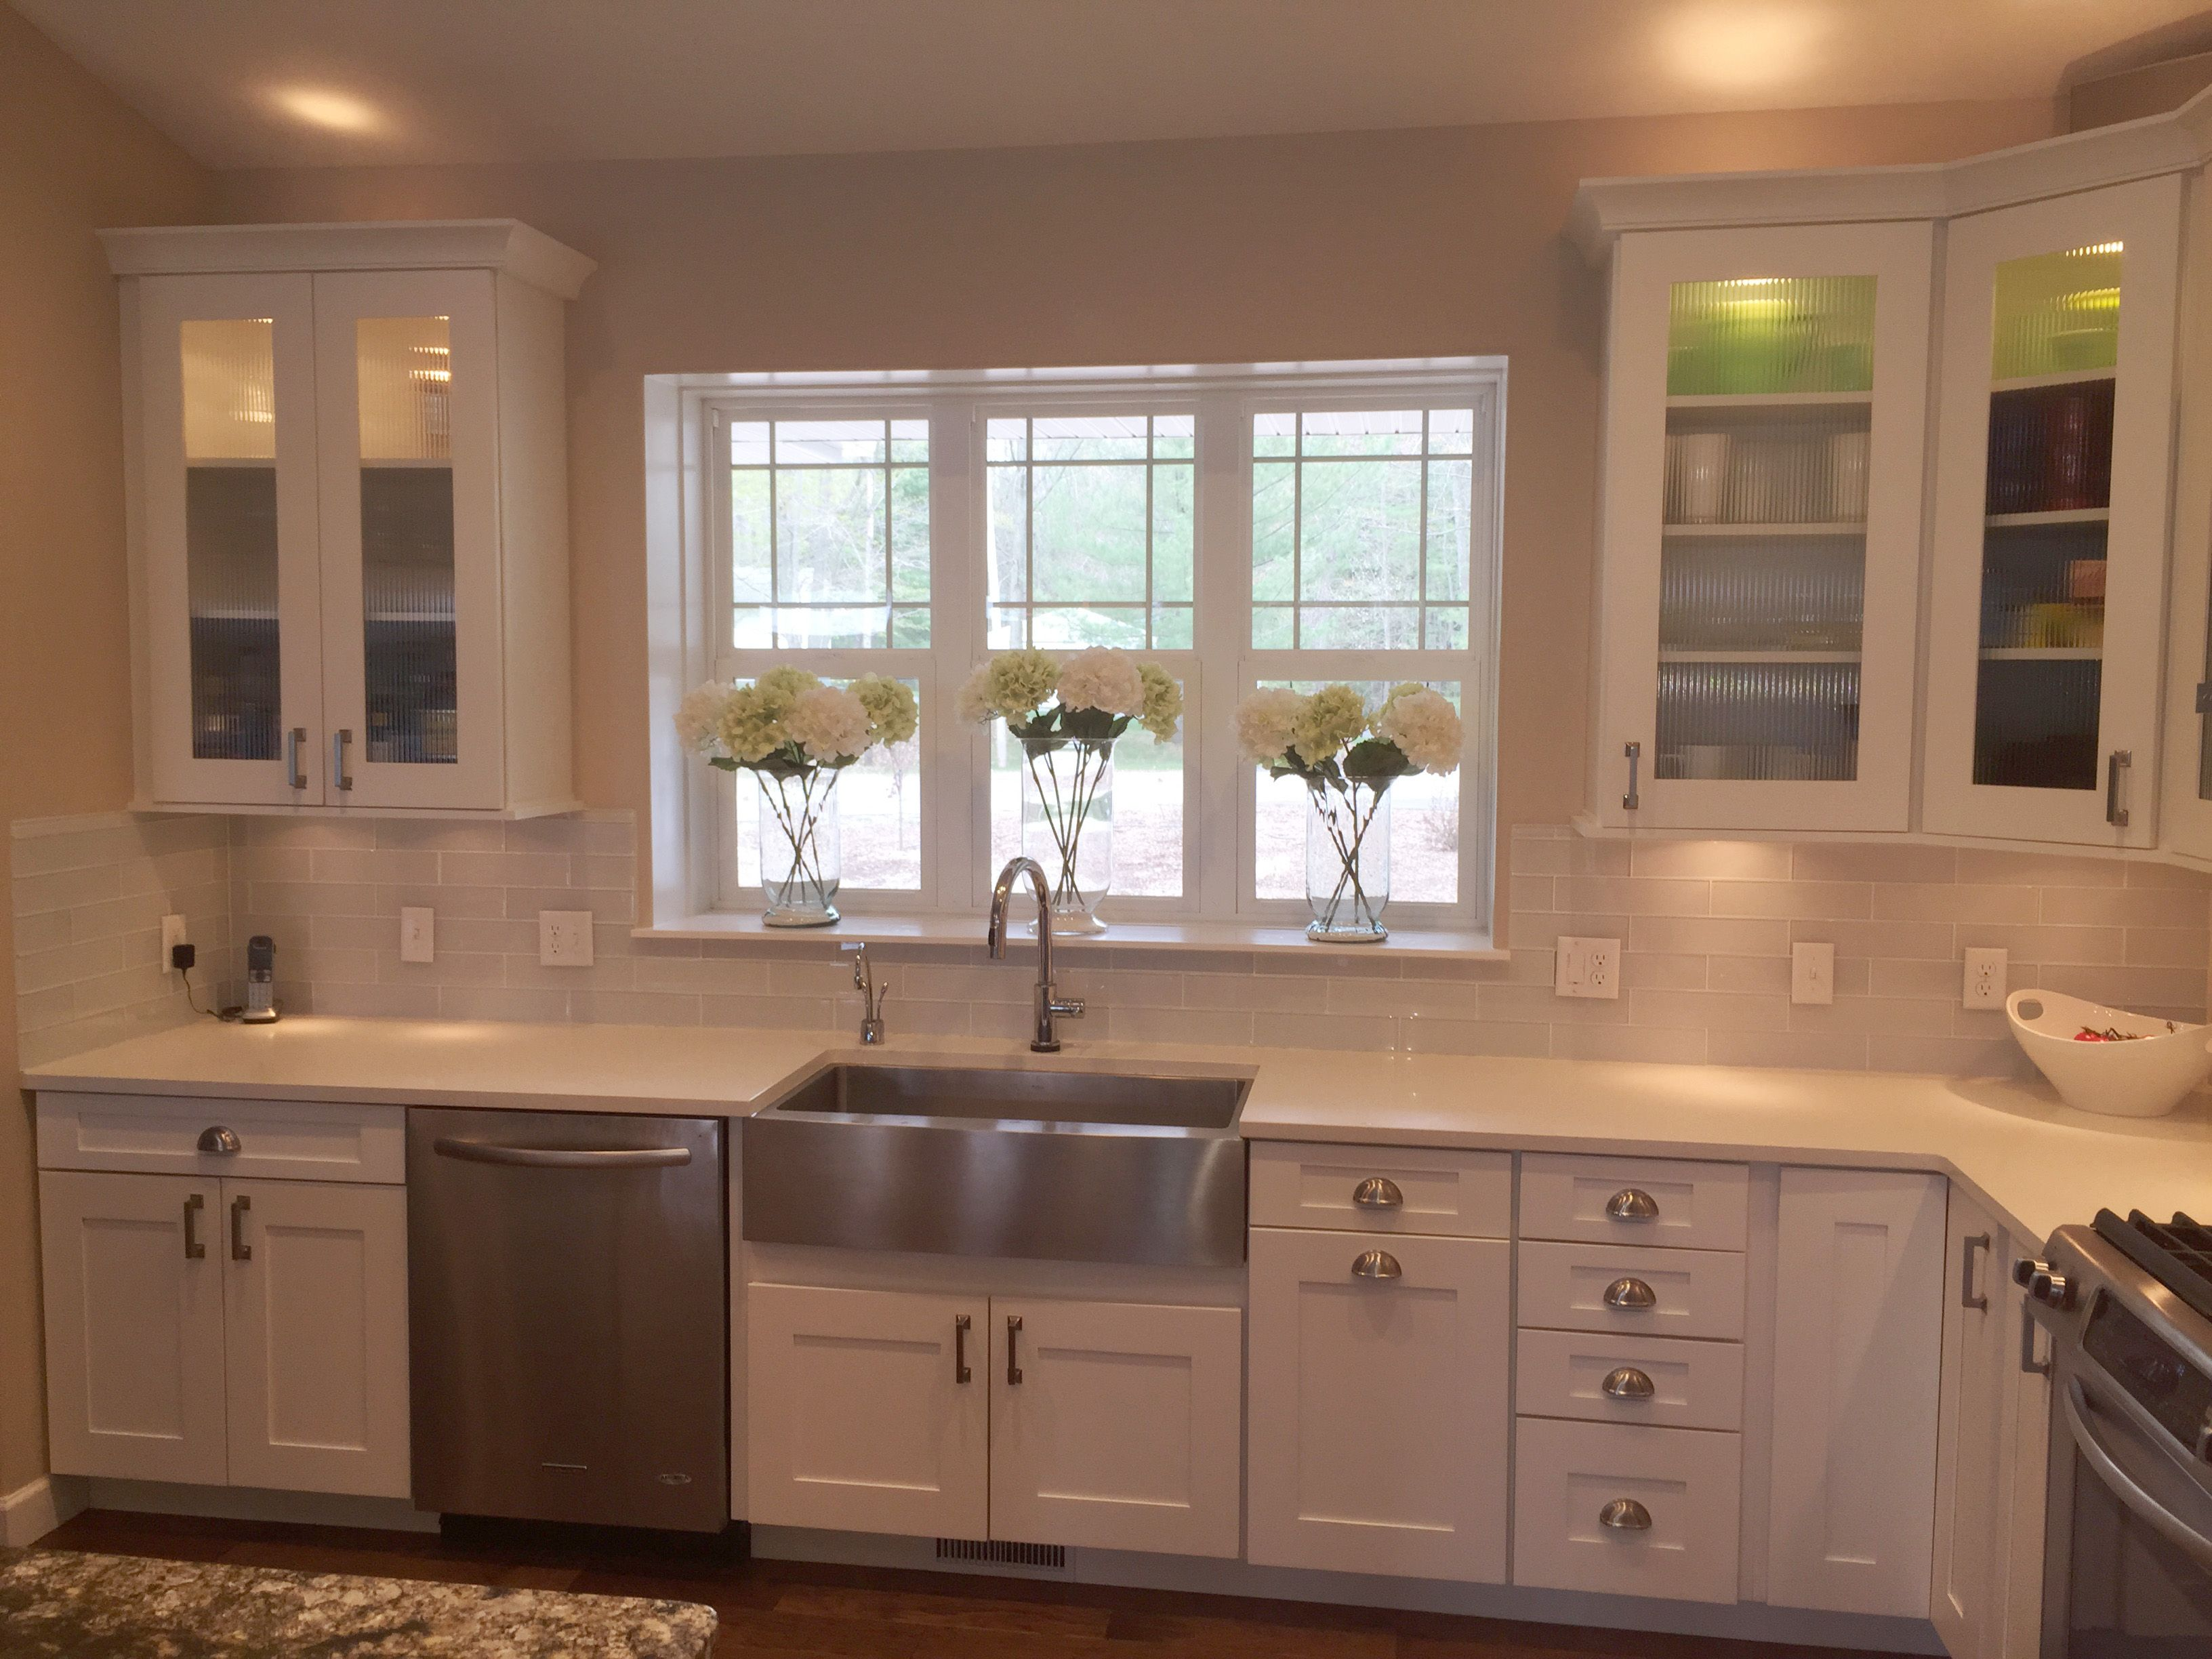 135 best Kitchens | Hickory Hardware images on Pinterest | Hickory ...